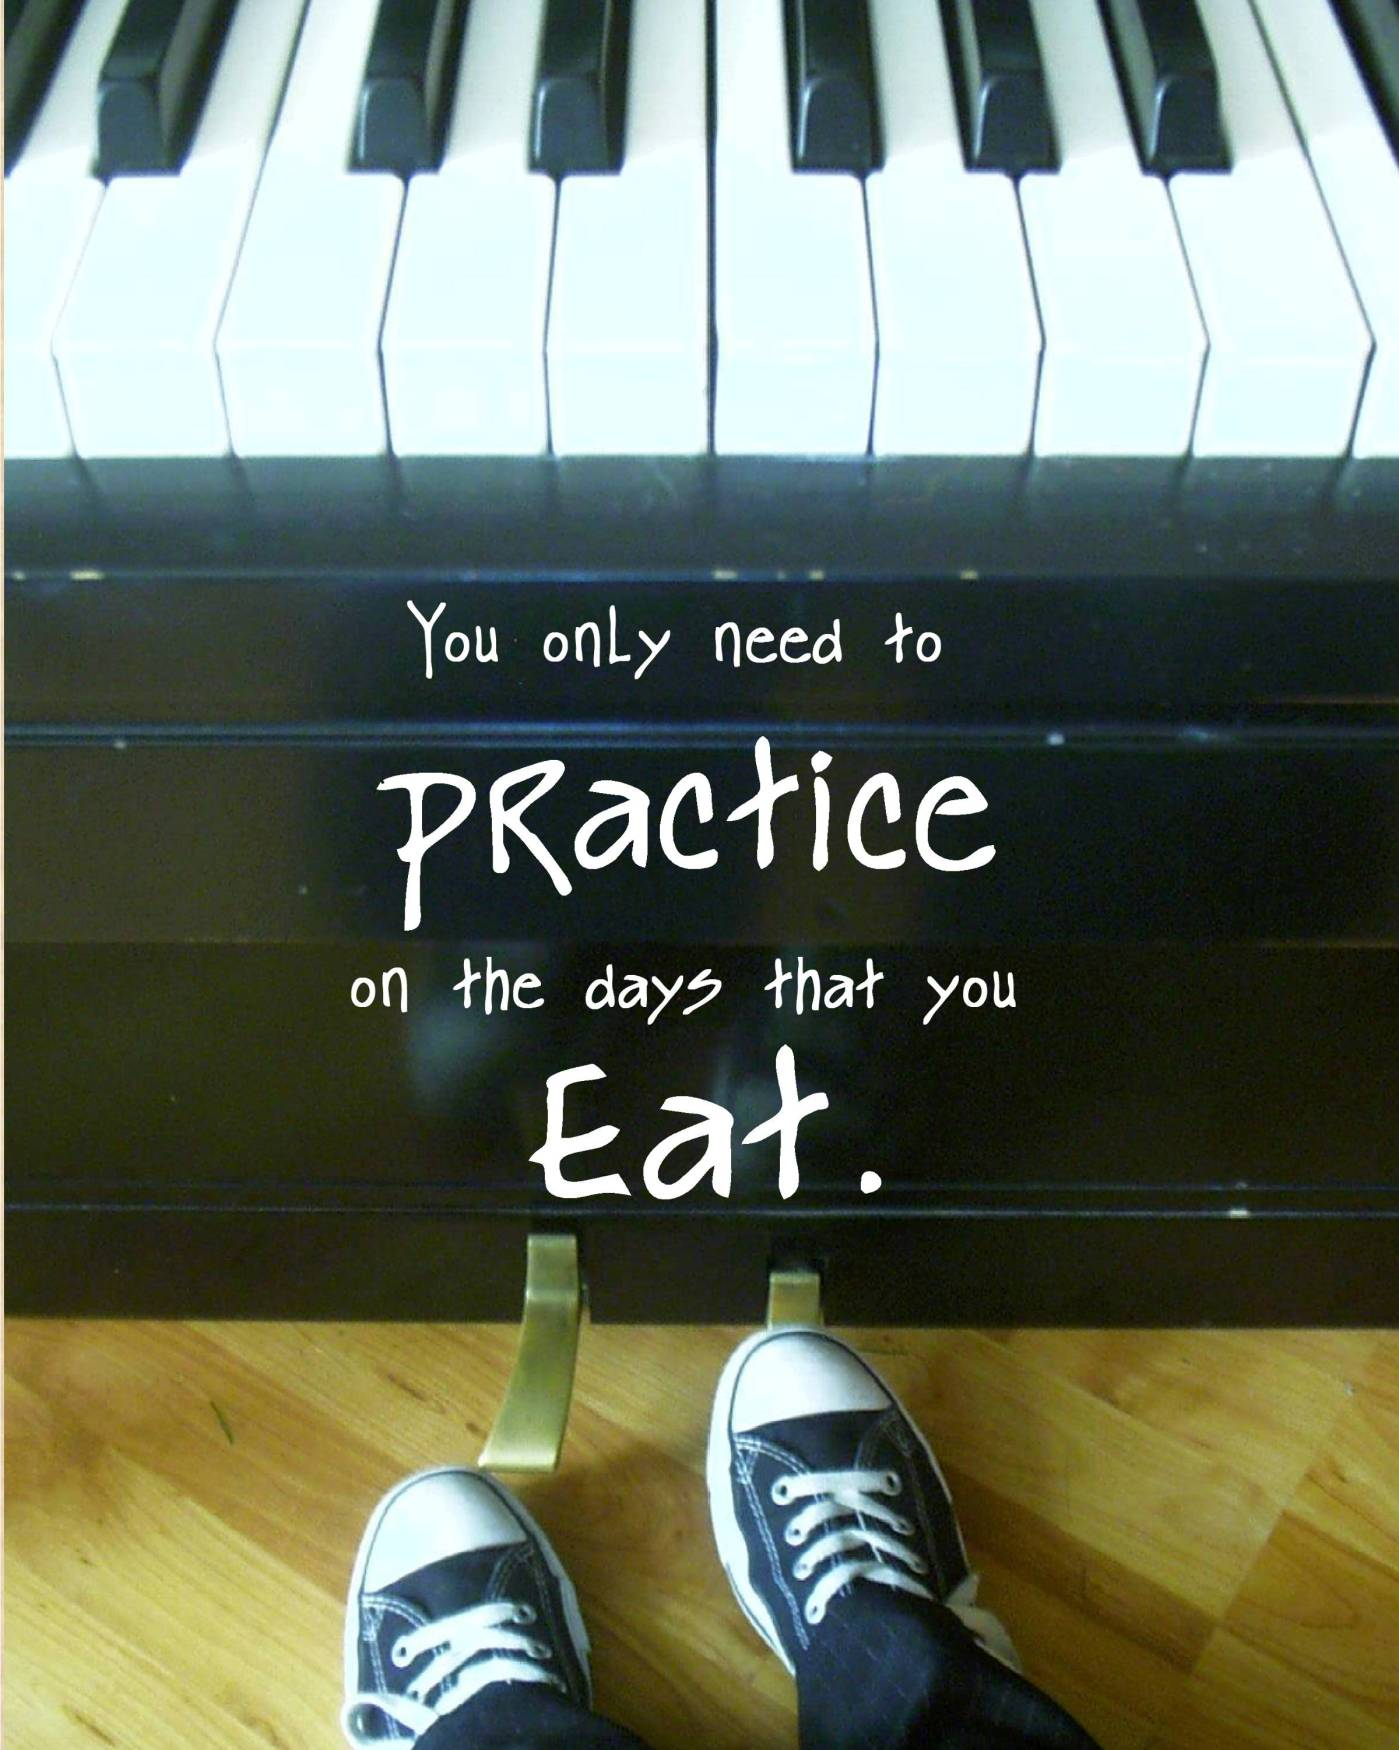 Practice on the days you eat